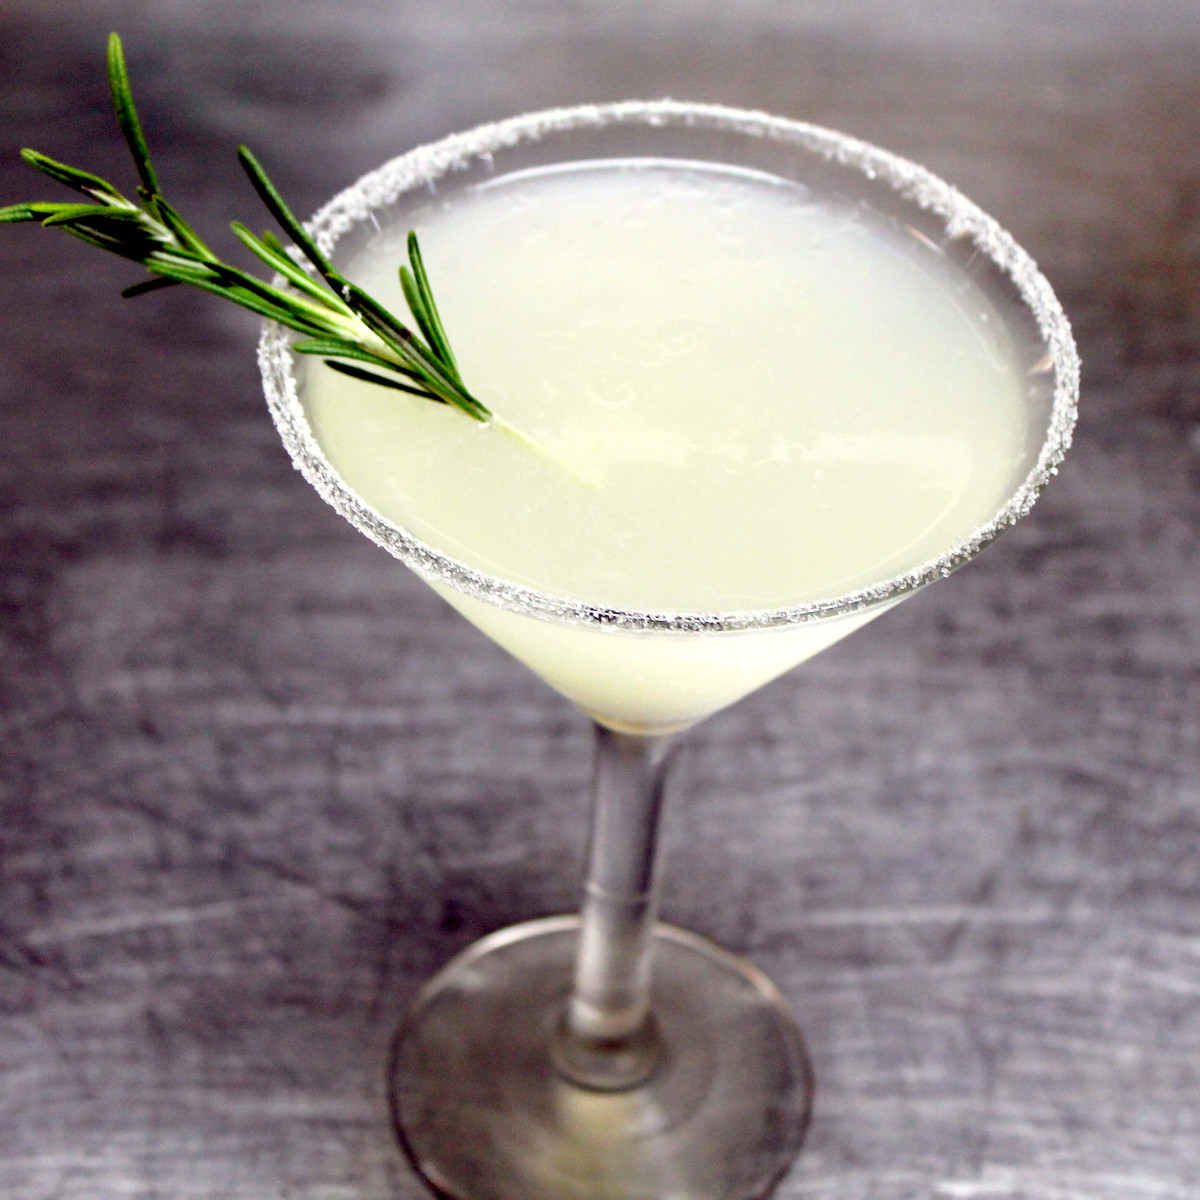 Houston, Damian's Cucina Italiana, Rosemary Lemon Drop, August 2017